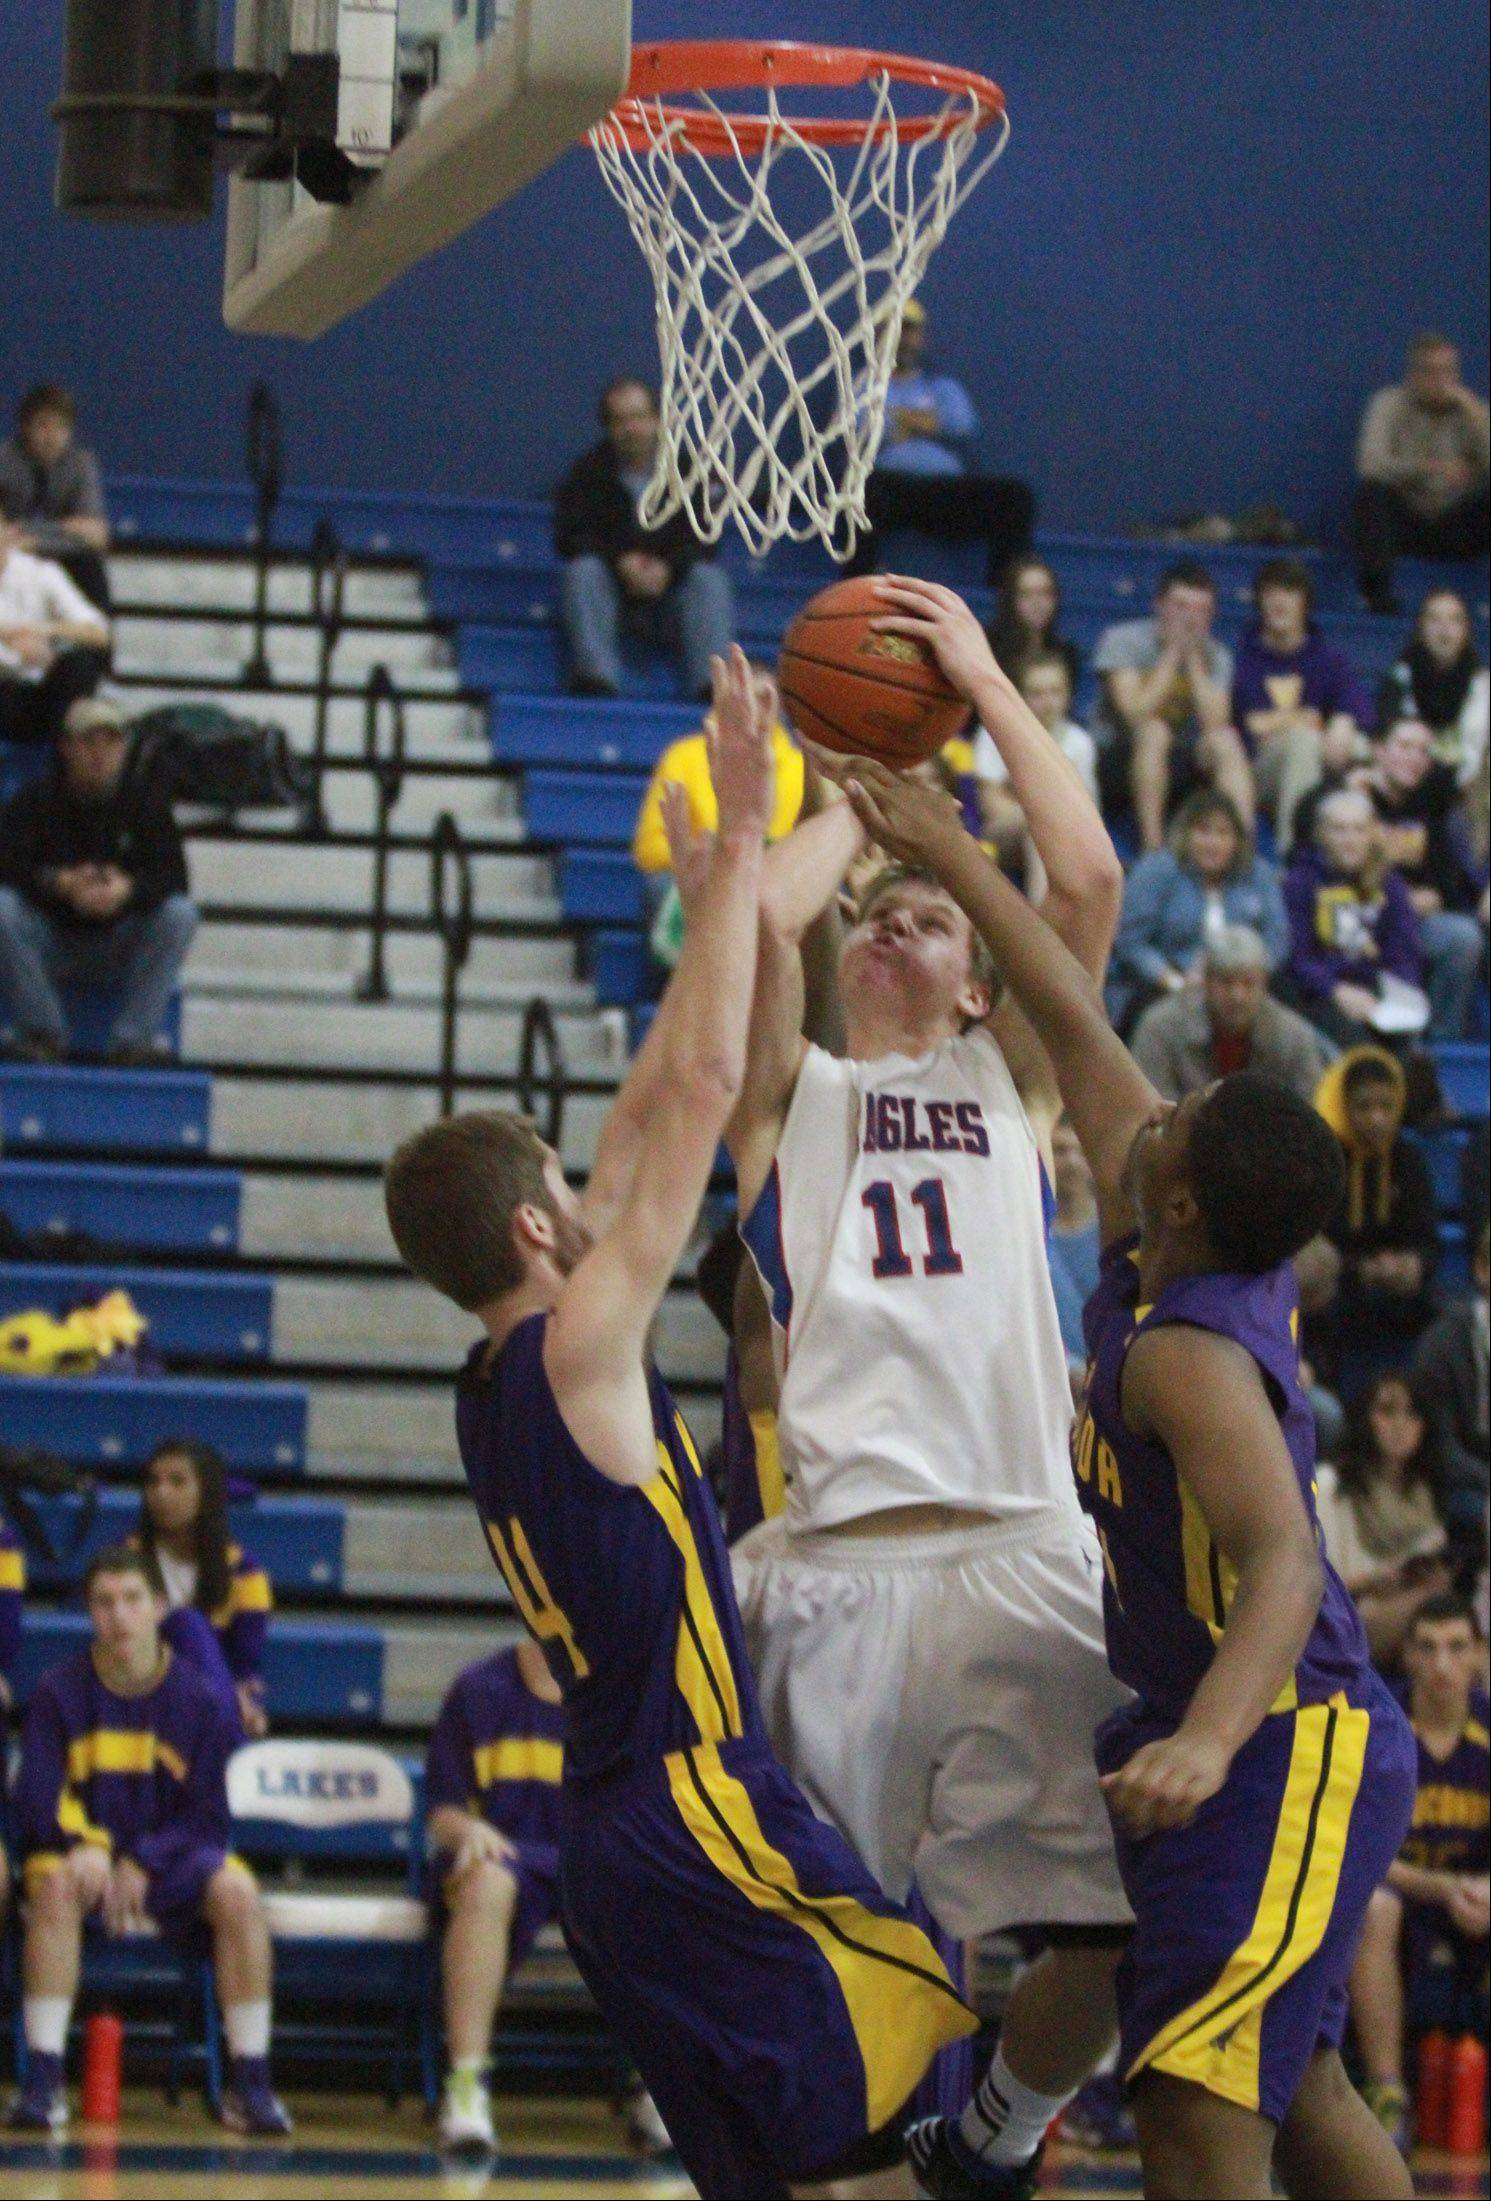 Images from the Wauconda at Lakes boys basketball game on Friday, Nov. 30 in Lake Villa.